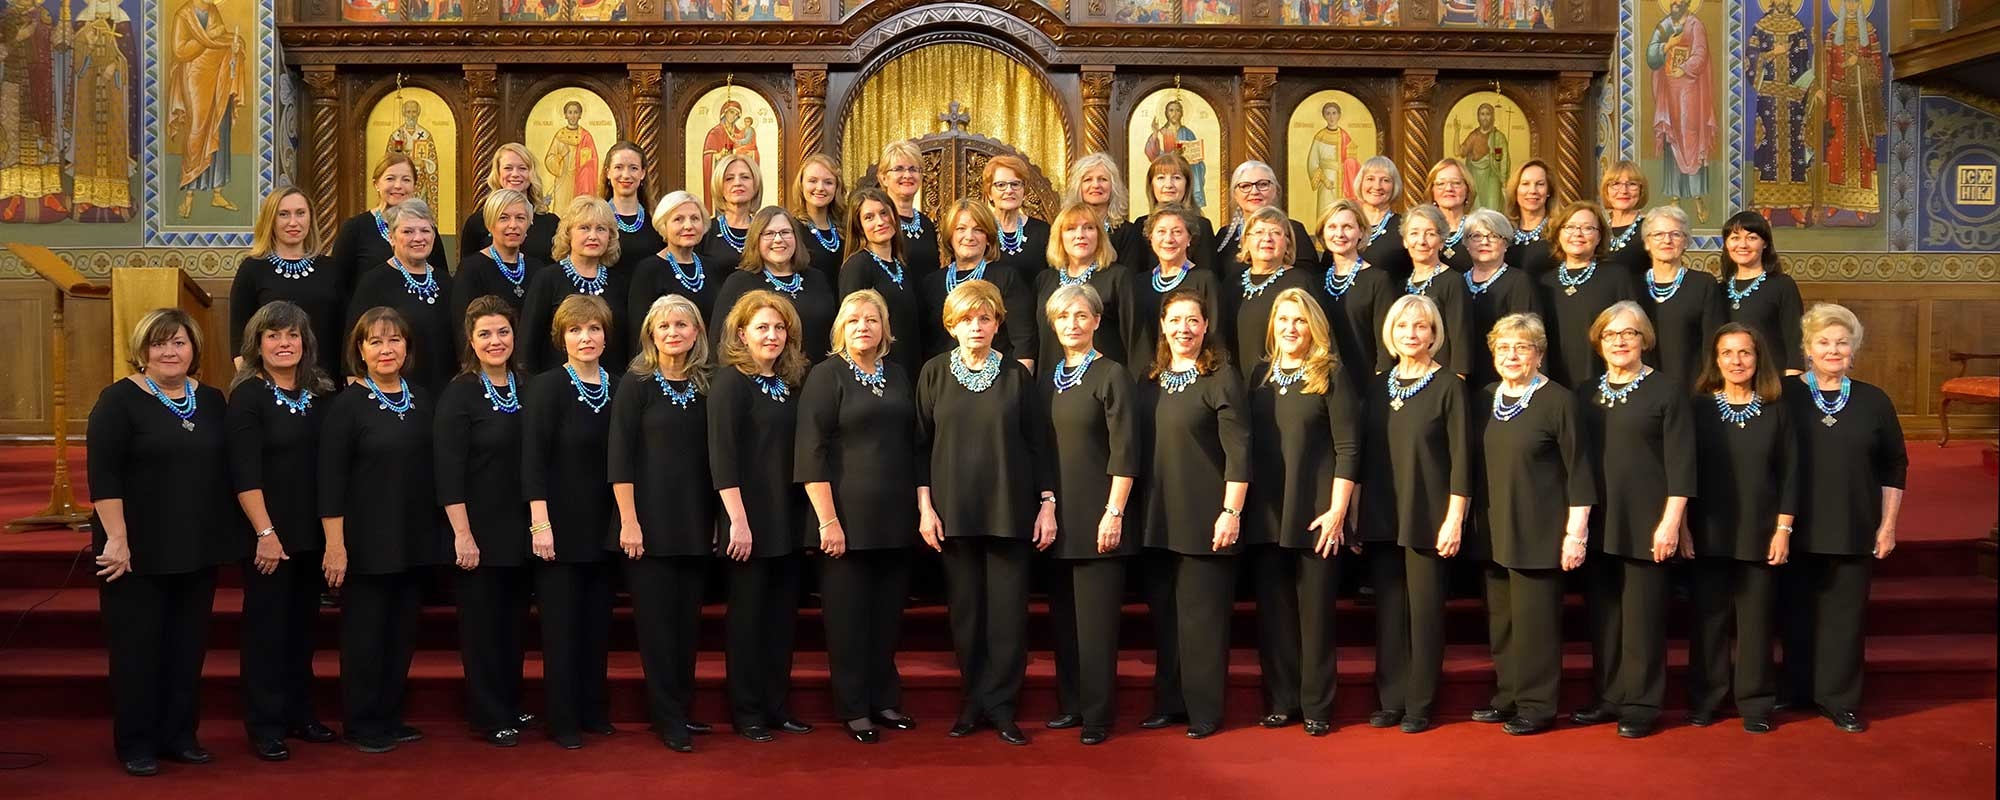 Vesnivka Women's Choir